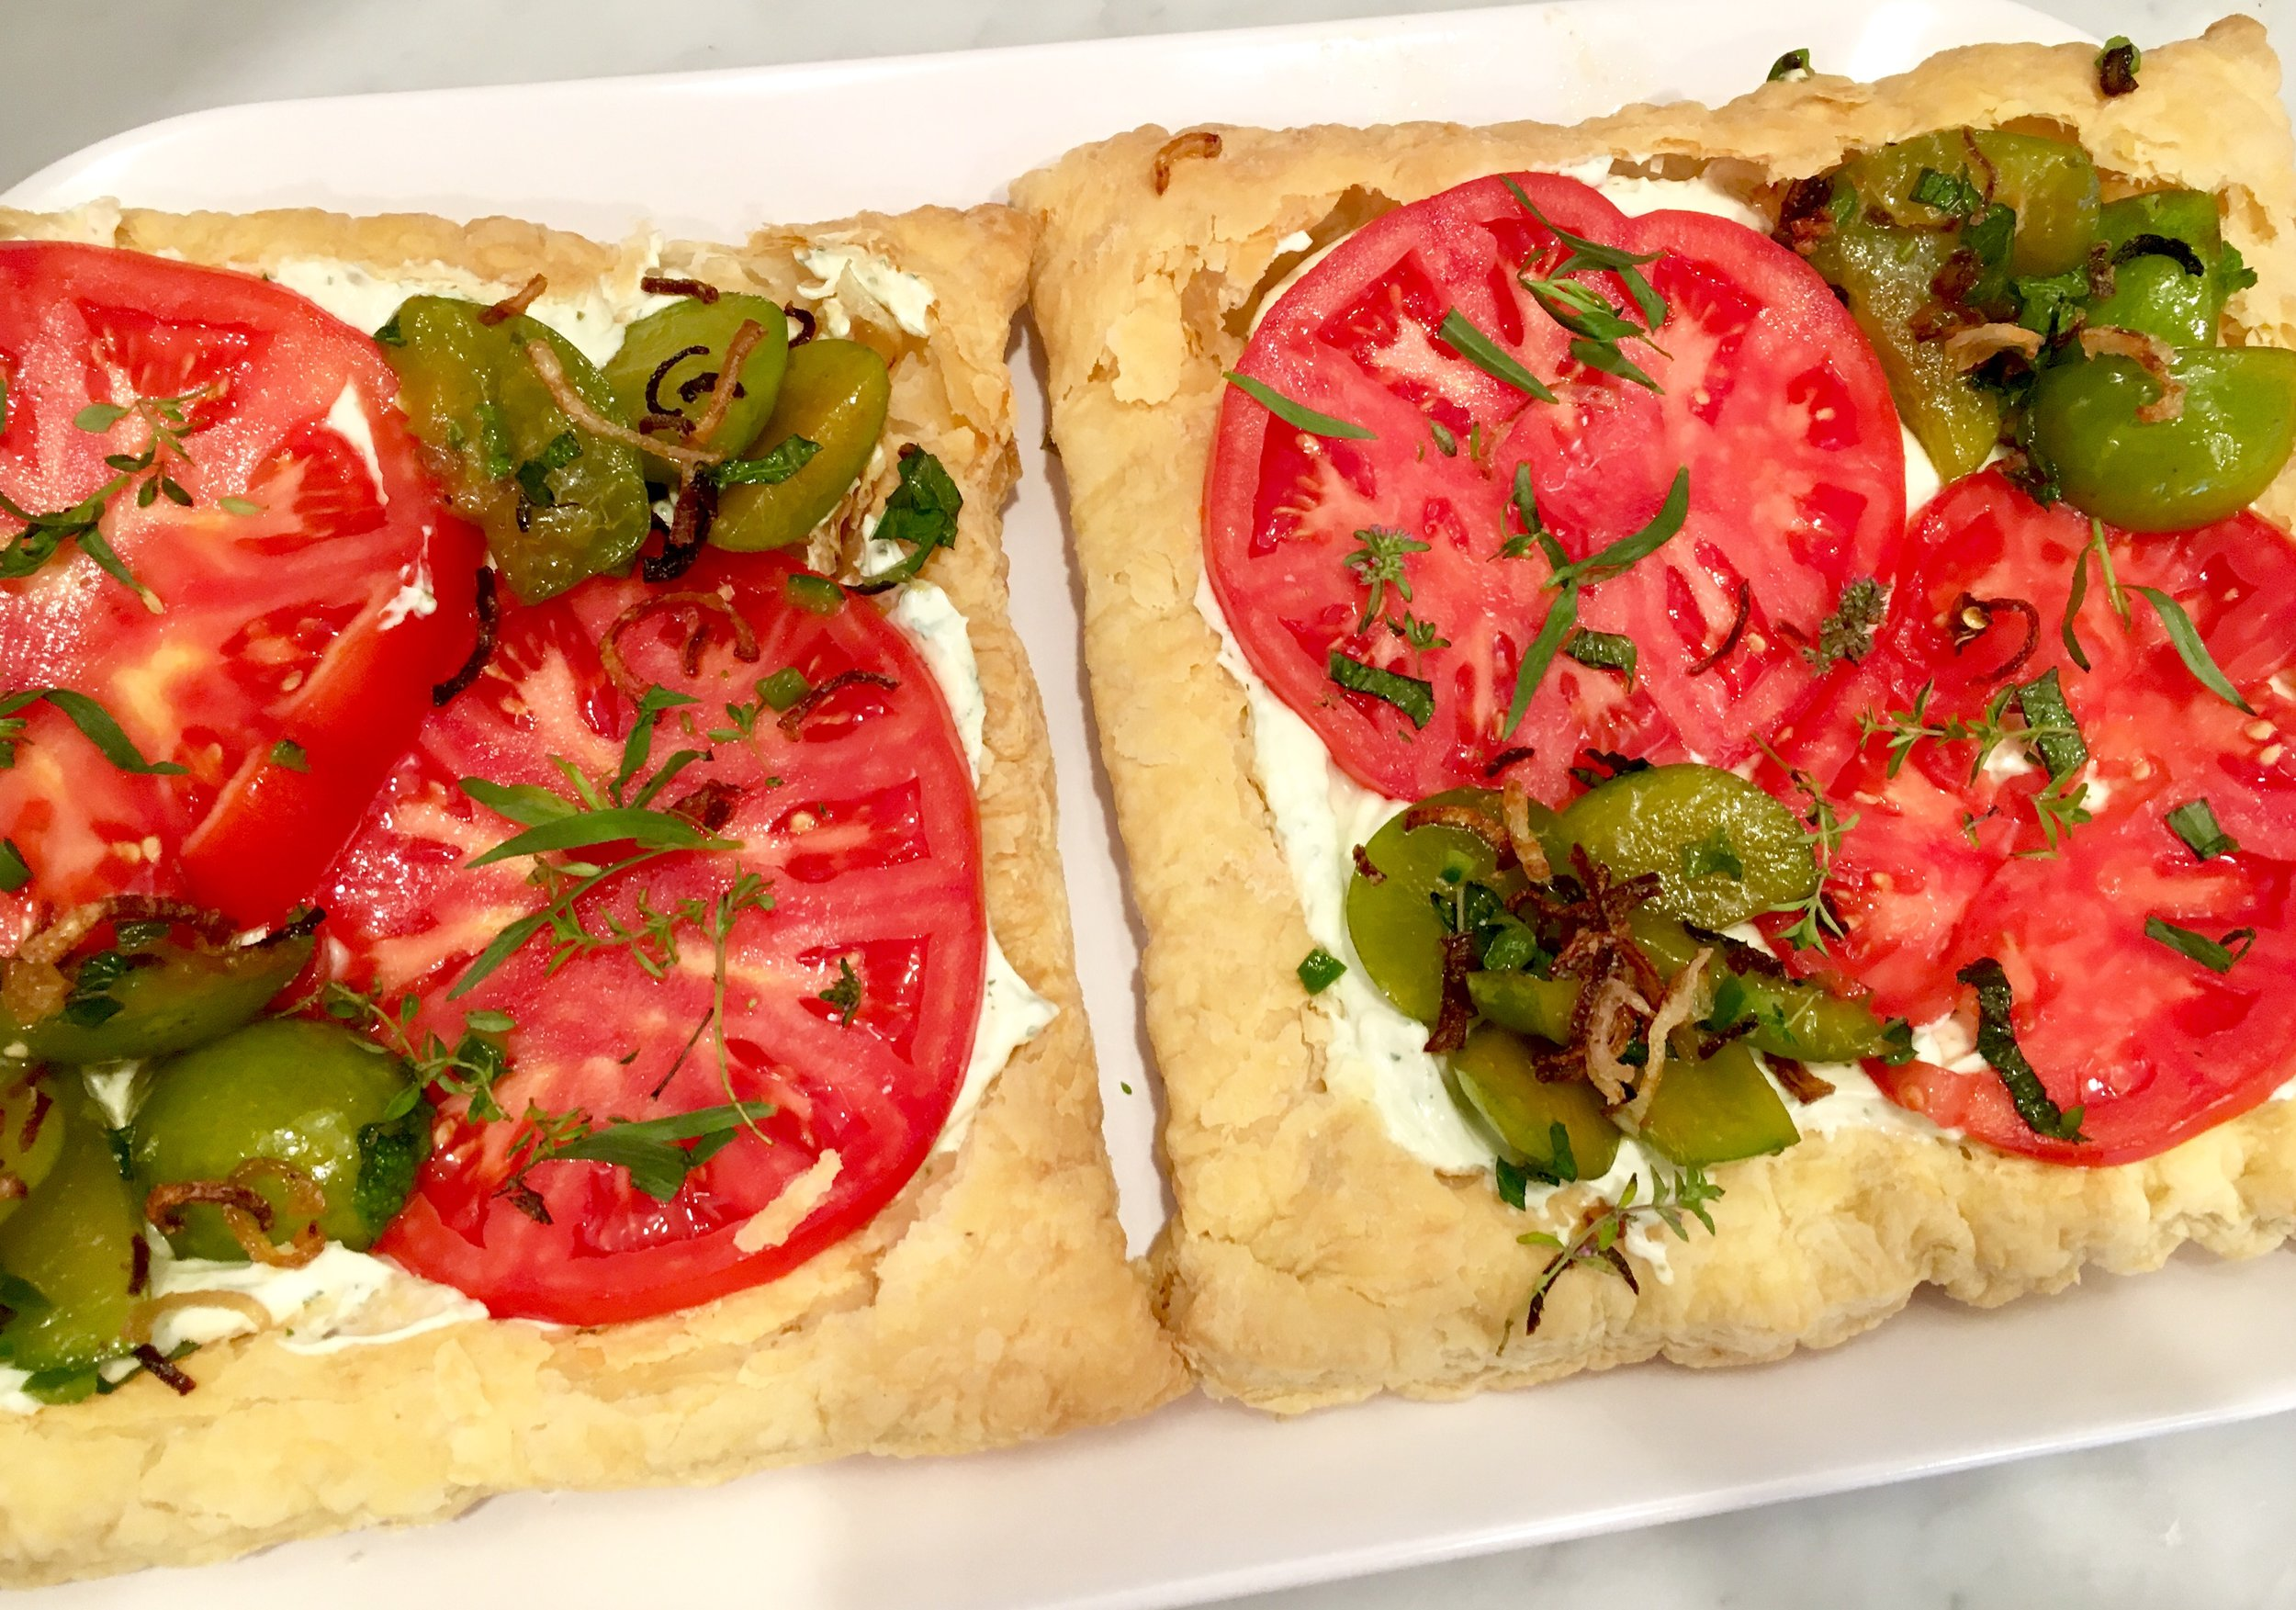 Heirloom tomato and green plum tart with herbed ricotta and fried shallots